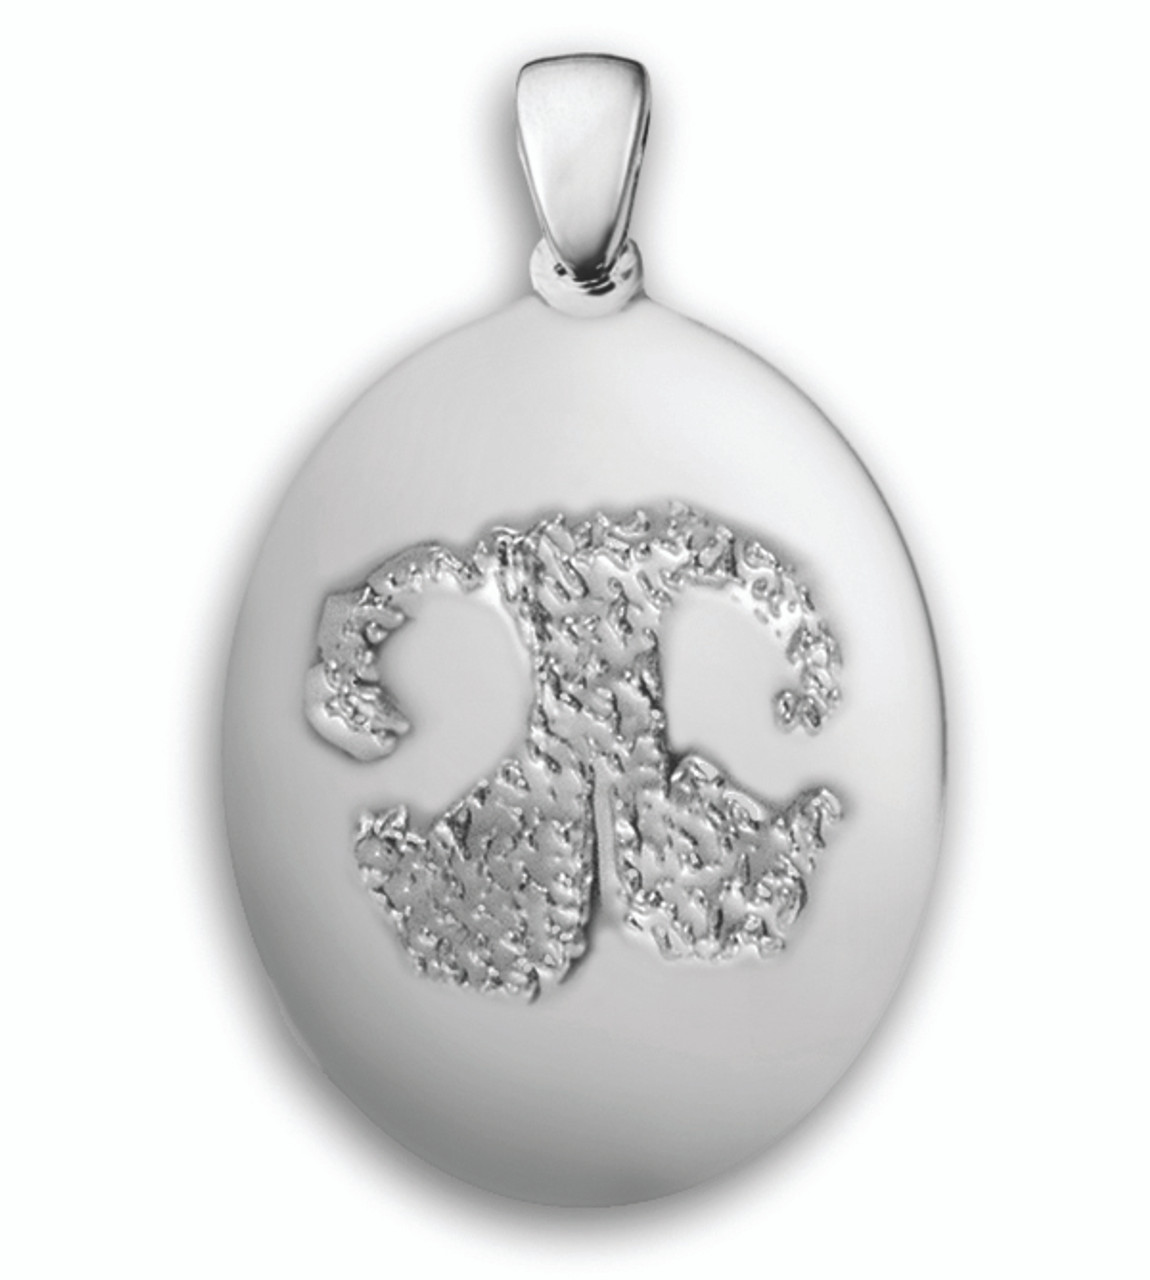 Standard Charm in Sterling Silver with Nose Print